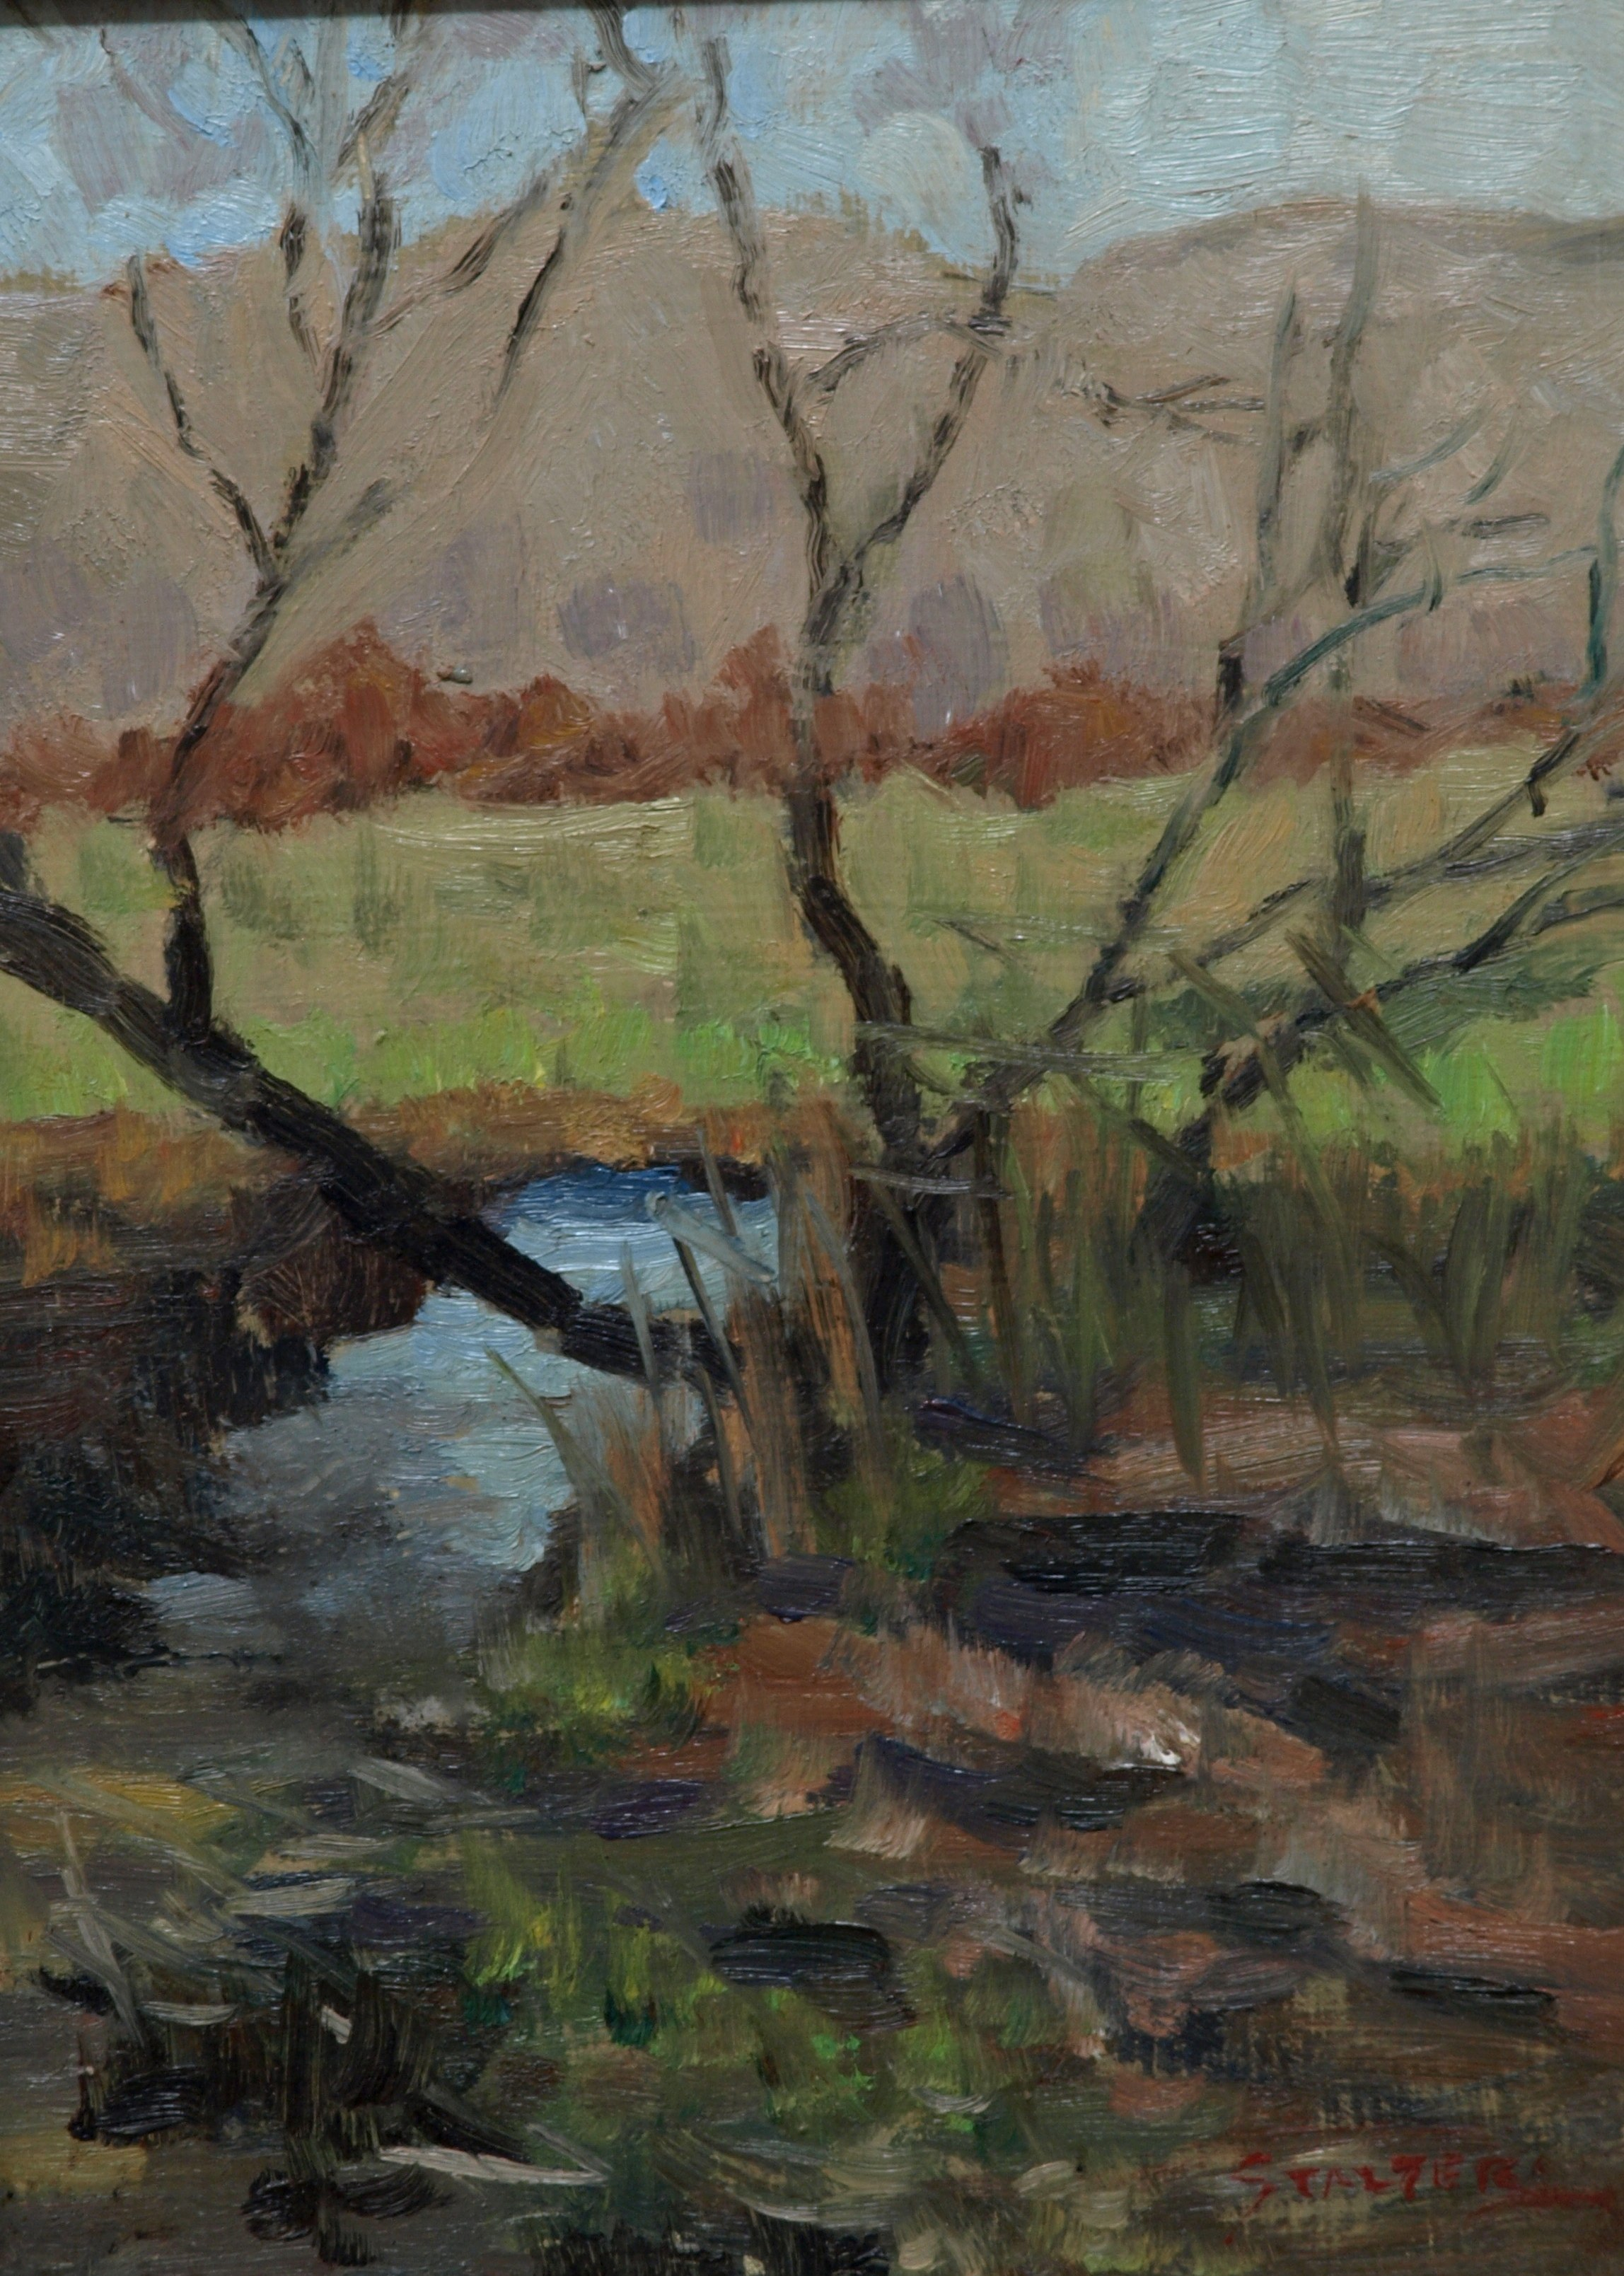 Tree by Brook, Oil on Panel, 12 x 9 Inches, by Richard Stalter, $225